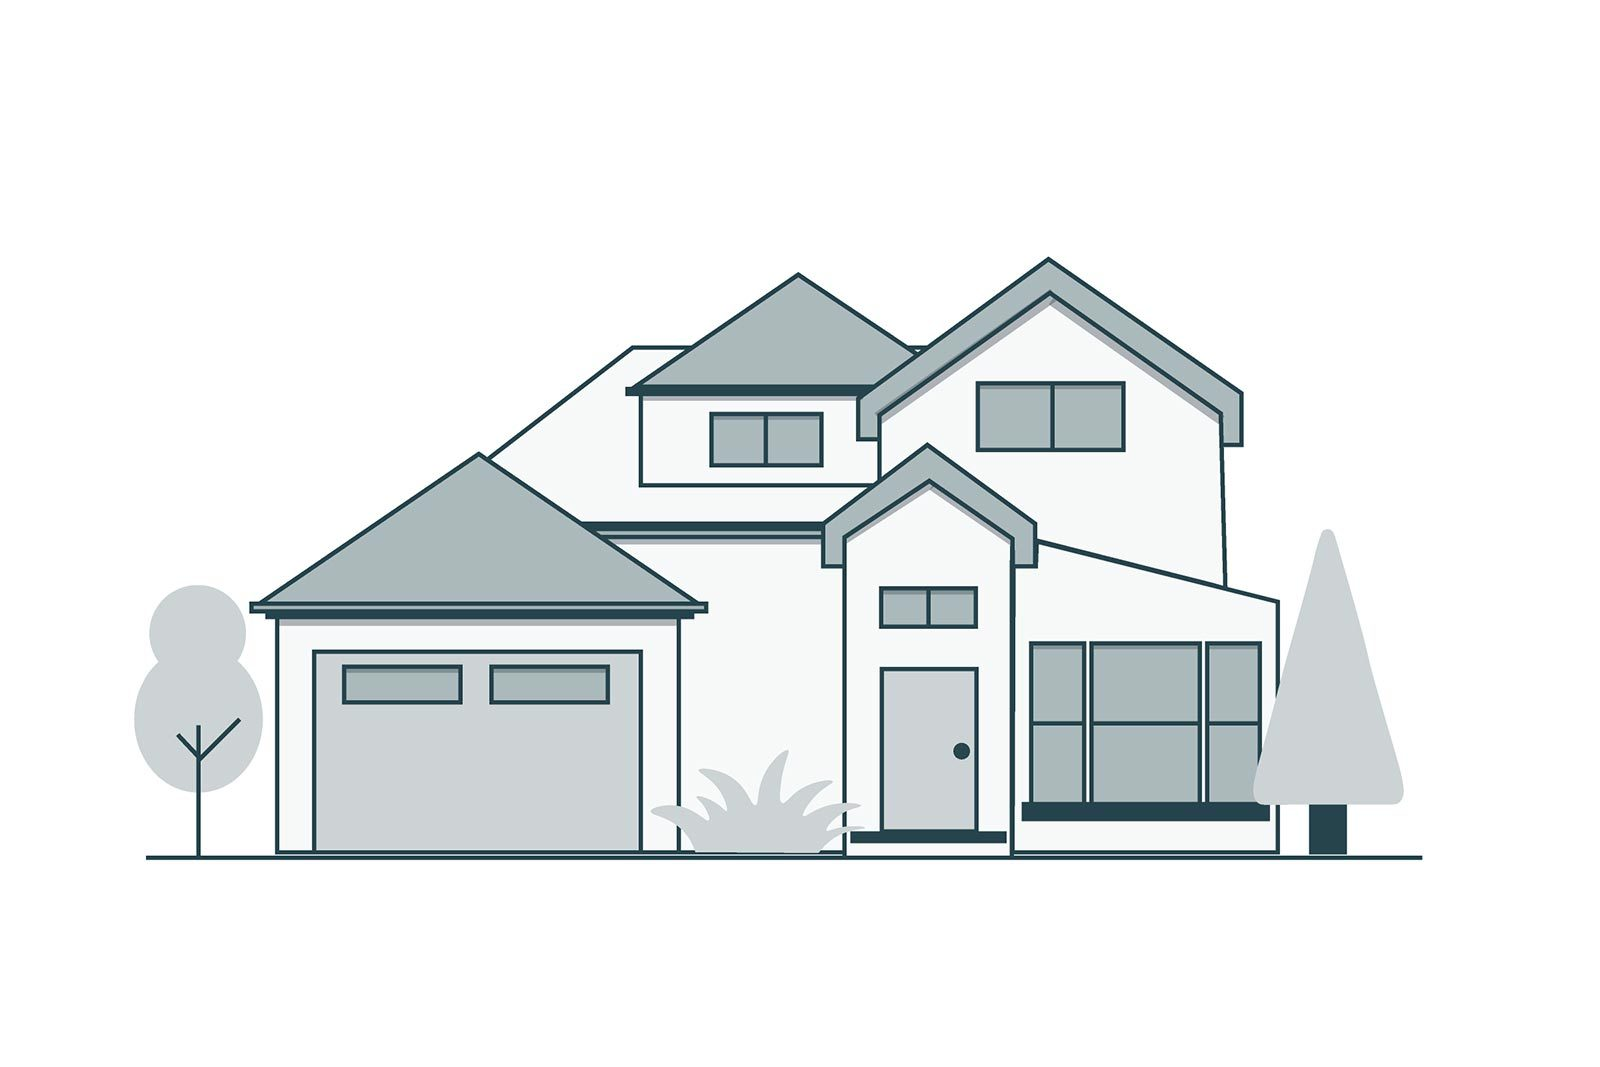 4254 New Wagonridge Rd Placerville, CA 95667